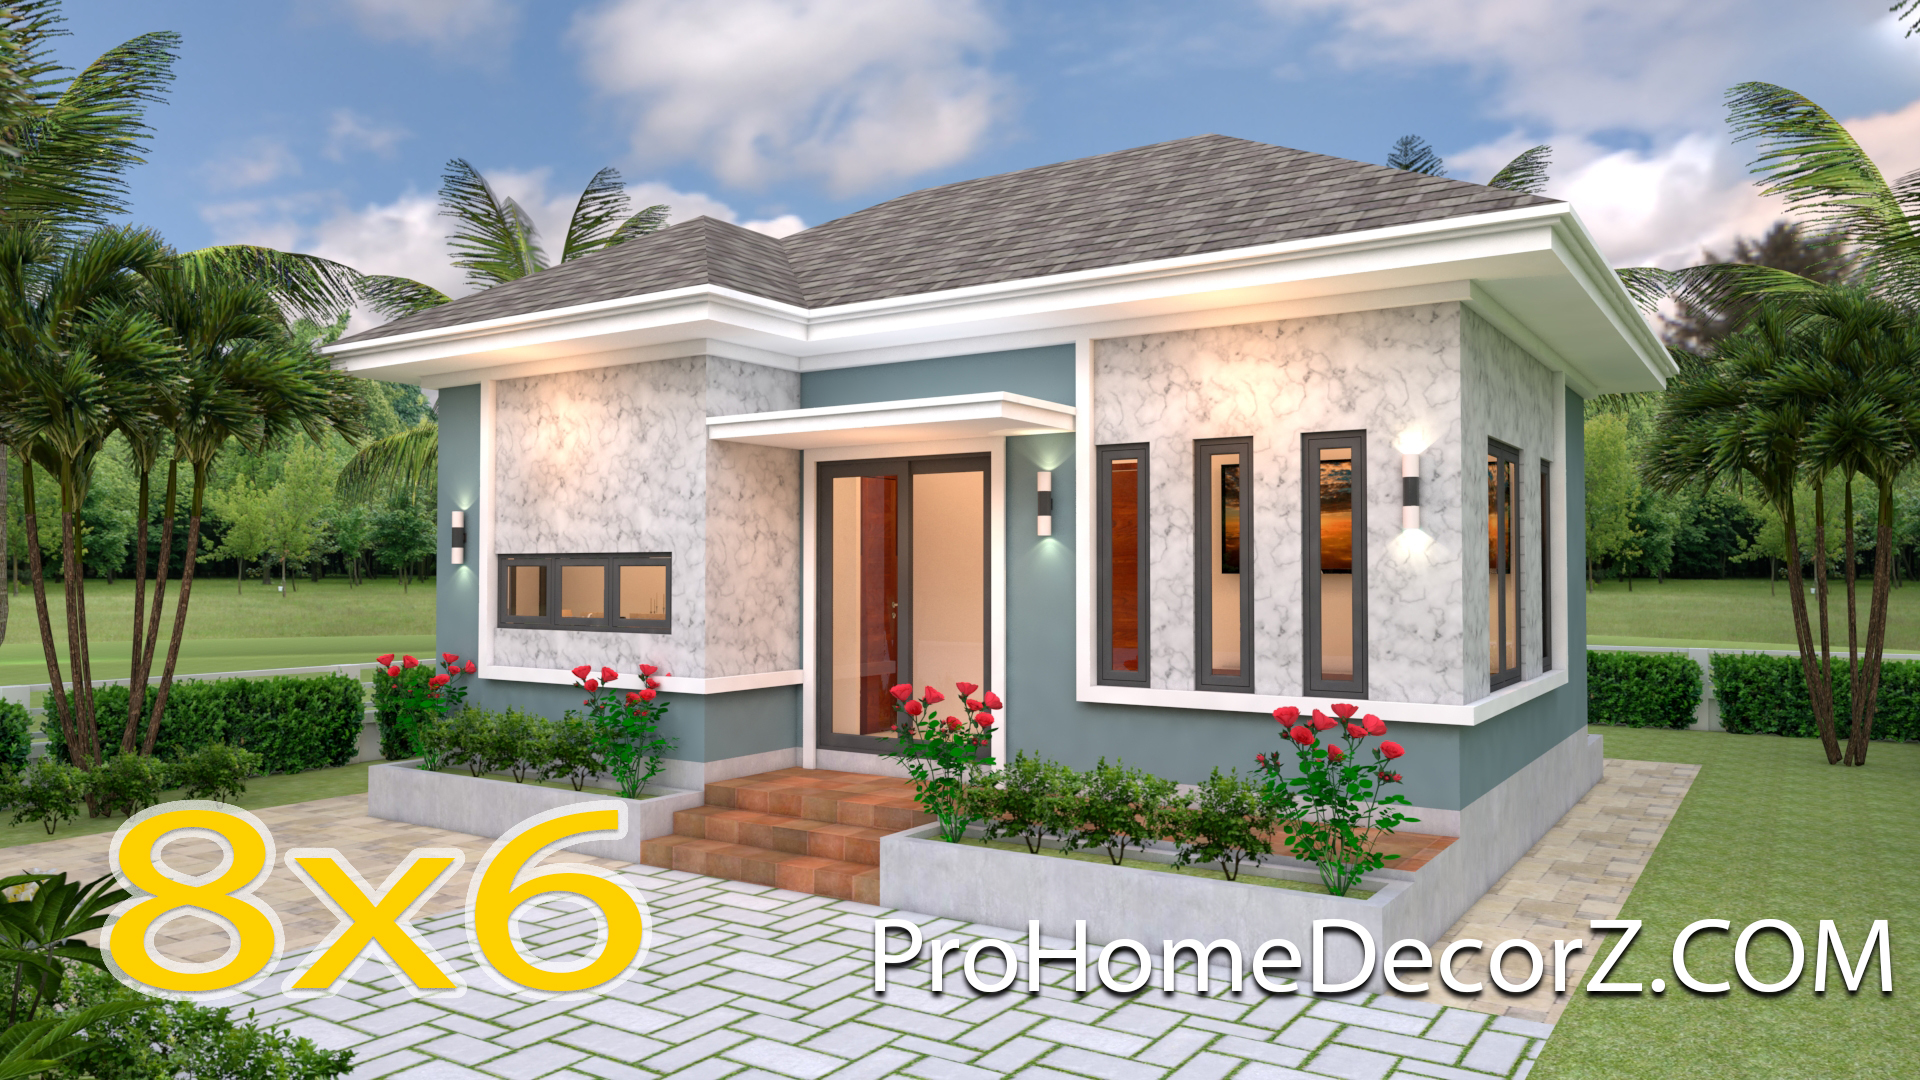 Simple Bungalow House Designs 8x6 Meter 26x20 Feet - Pro Home DecorS